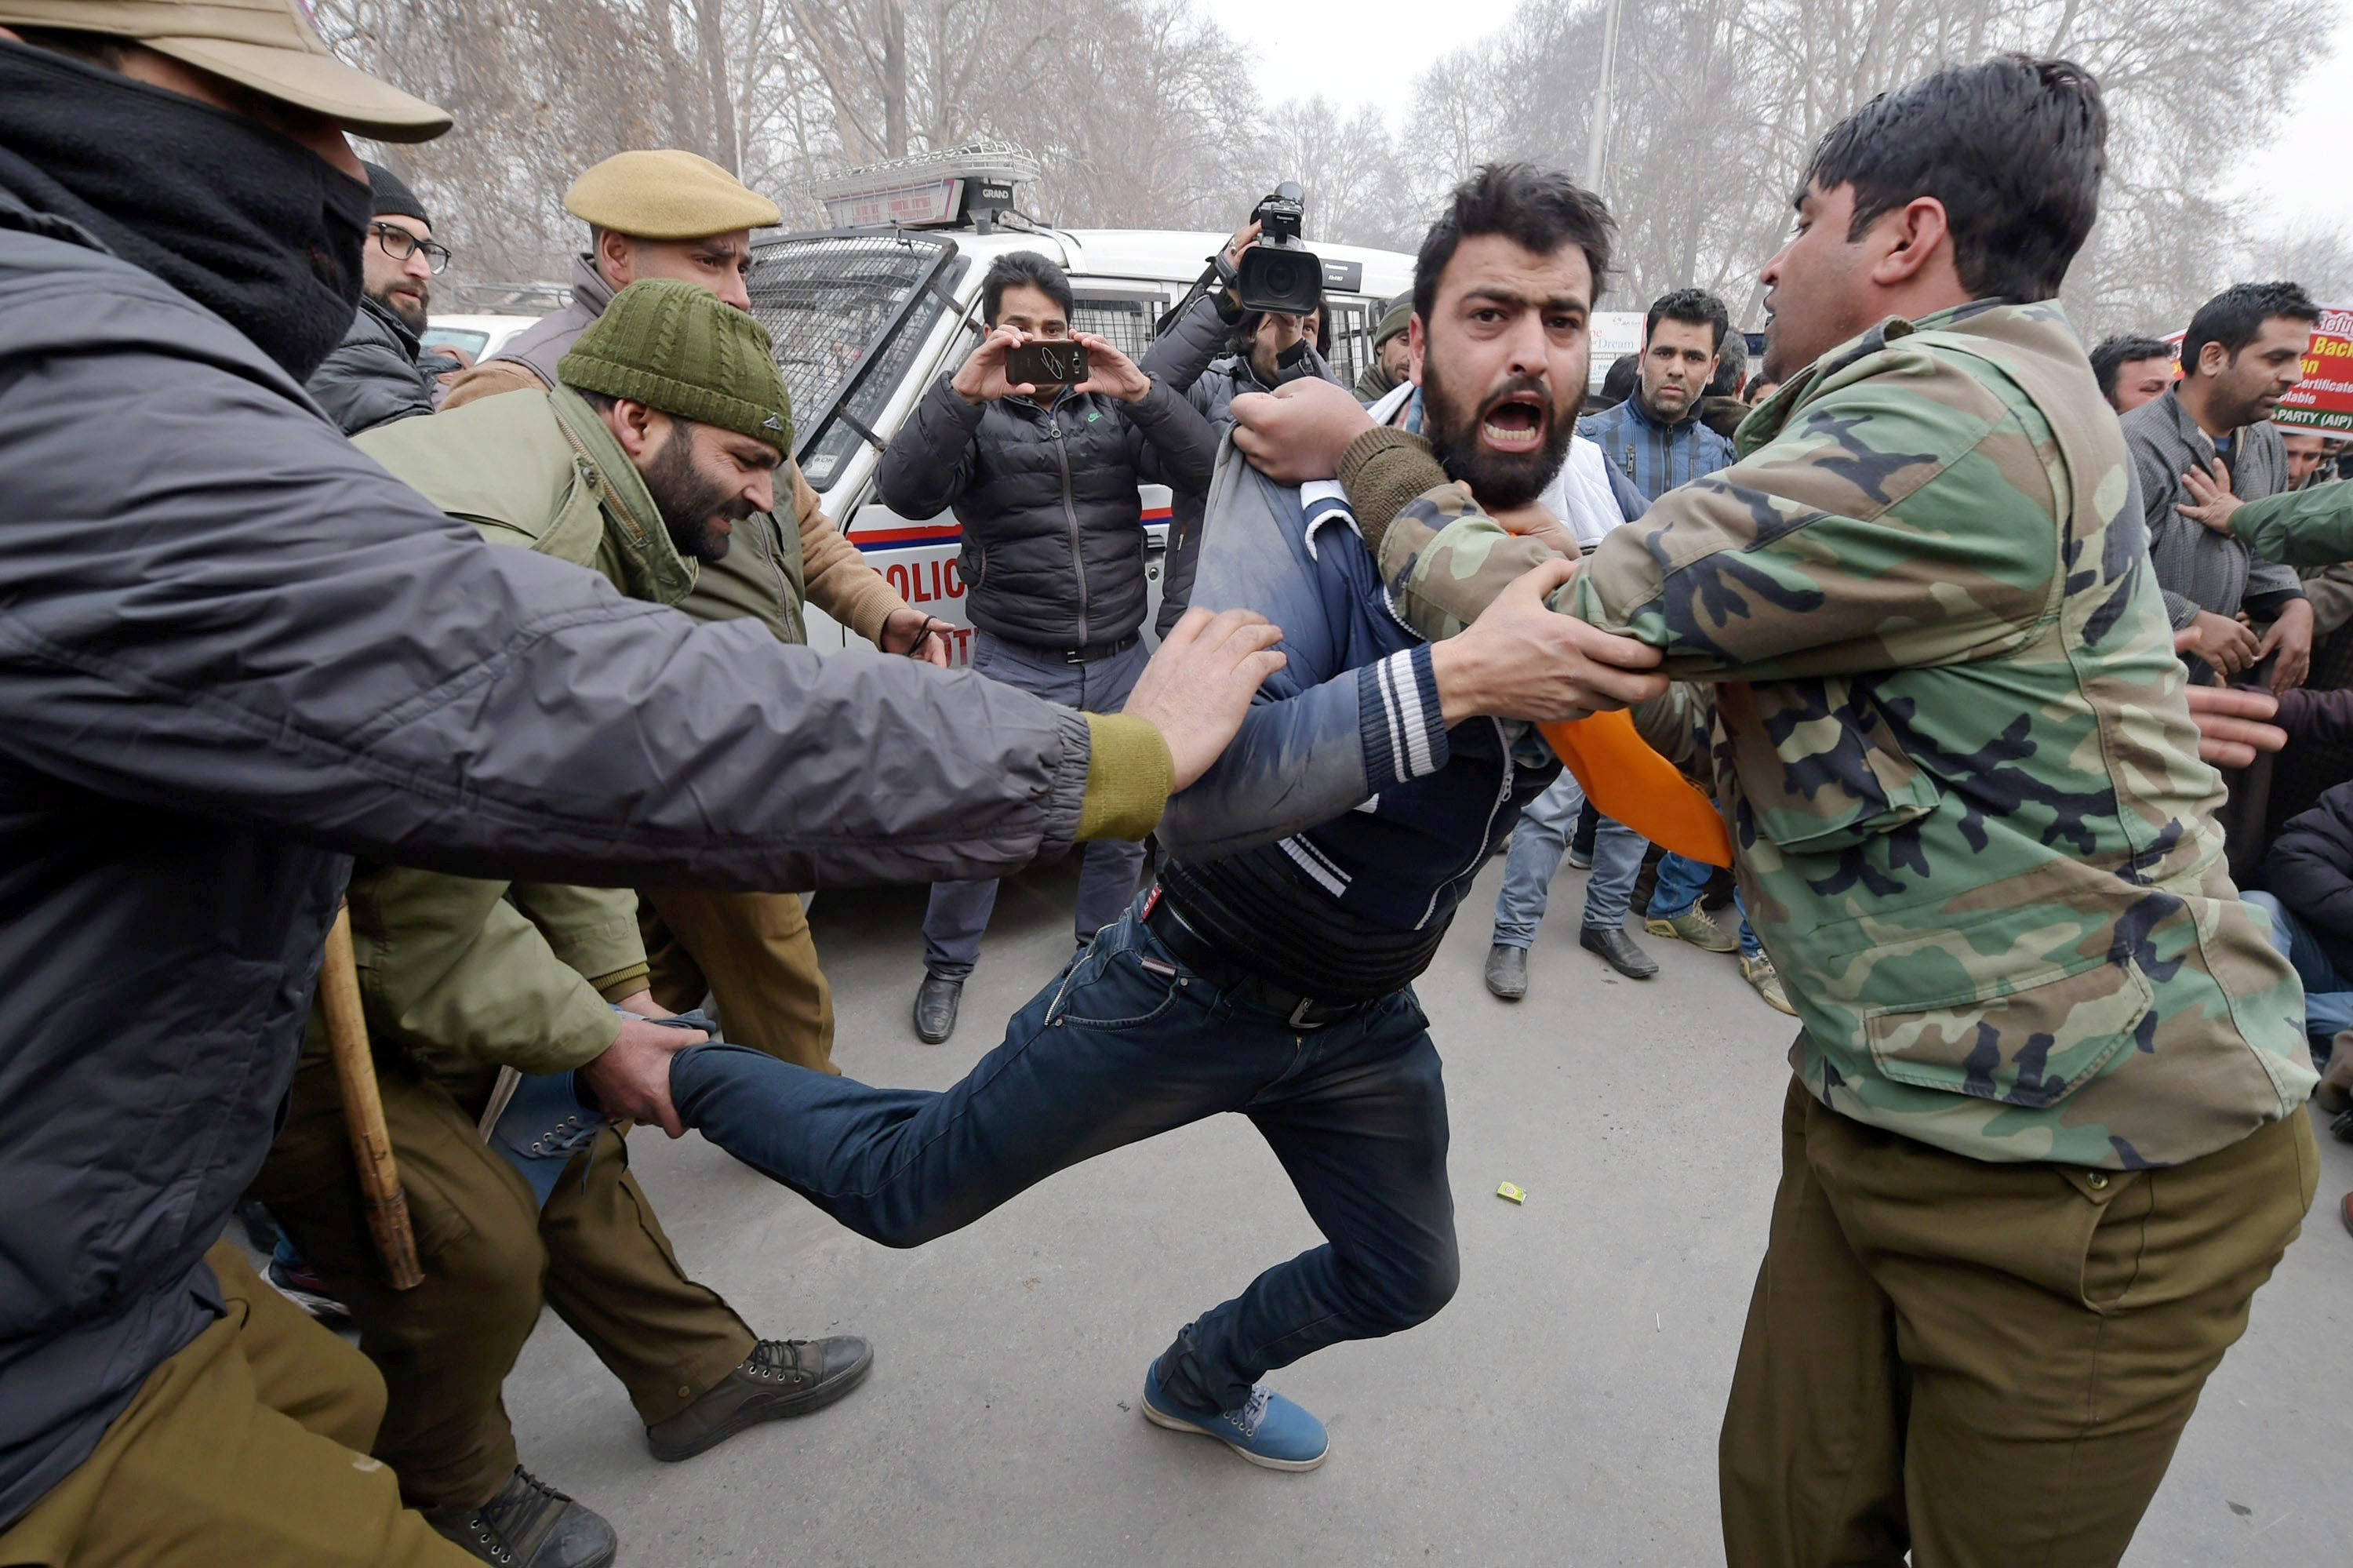 Police detain supporters of the Awami Itihaad Party led by Independent MLA Abdul Rashid Sheikh, during a protest march against issuing domicile certificates to West Pakistani refugees, in Srinagar on Thursday. Credit: PTI/S. Irfan